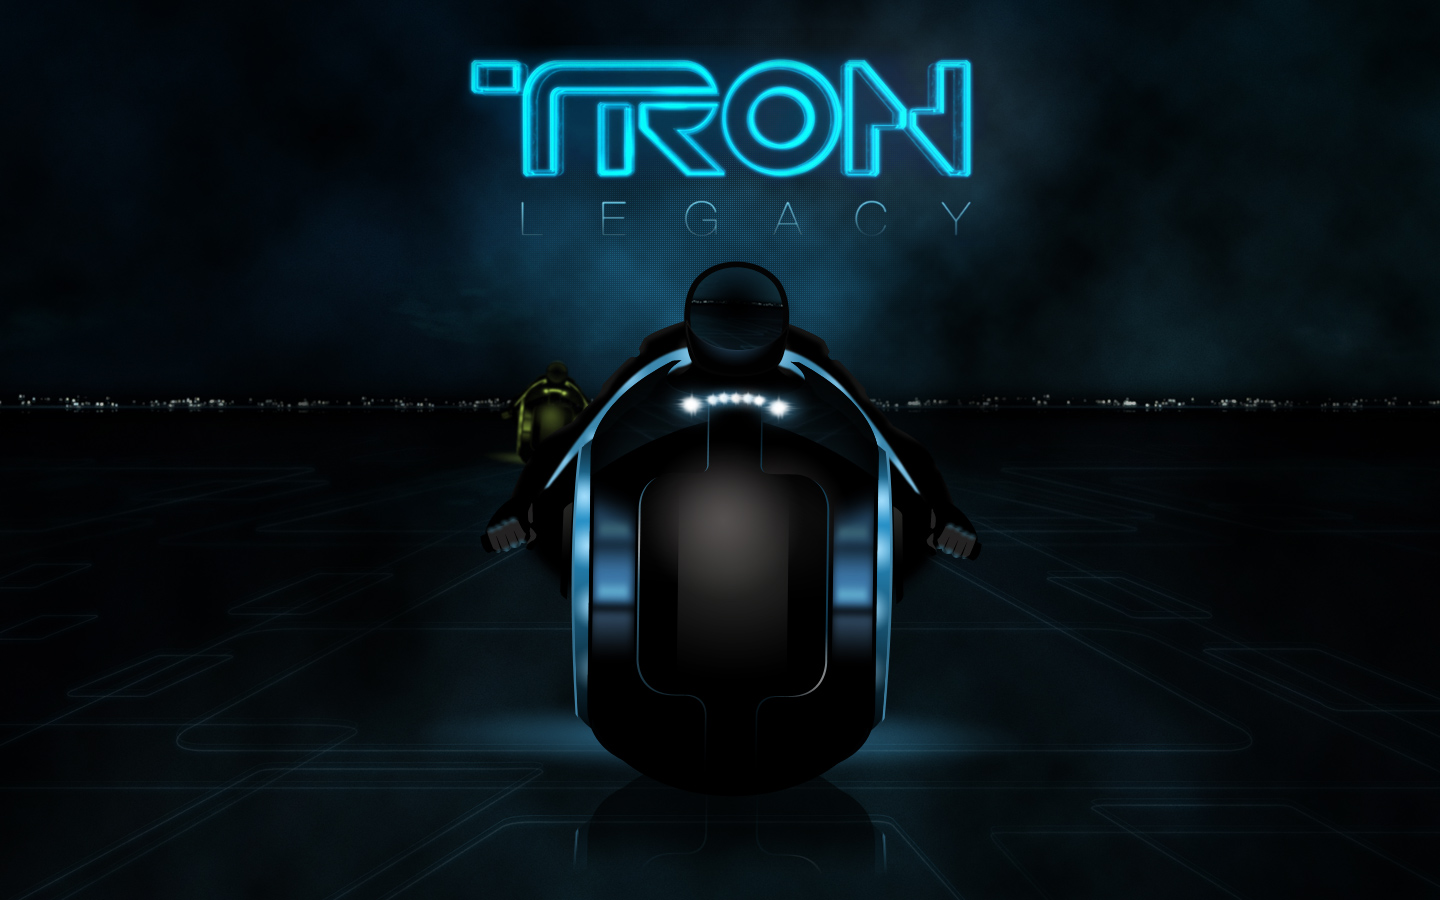 Tron legacy by disney mobile mobers org your daily source for mobile fun - Legacy wallpaper ...